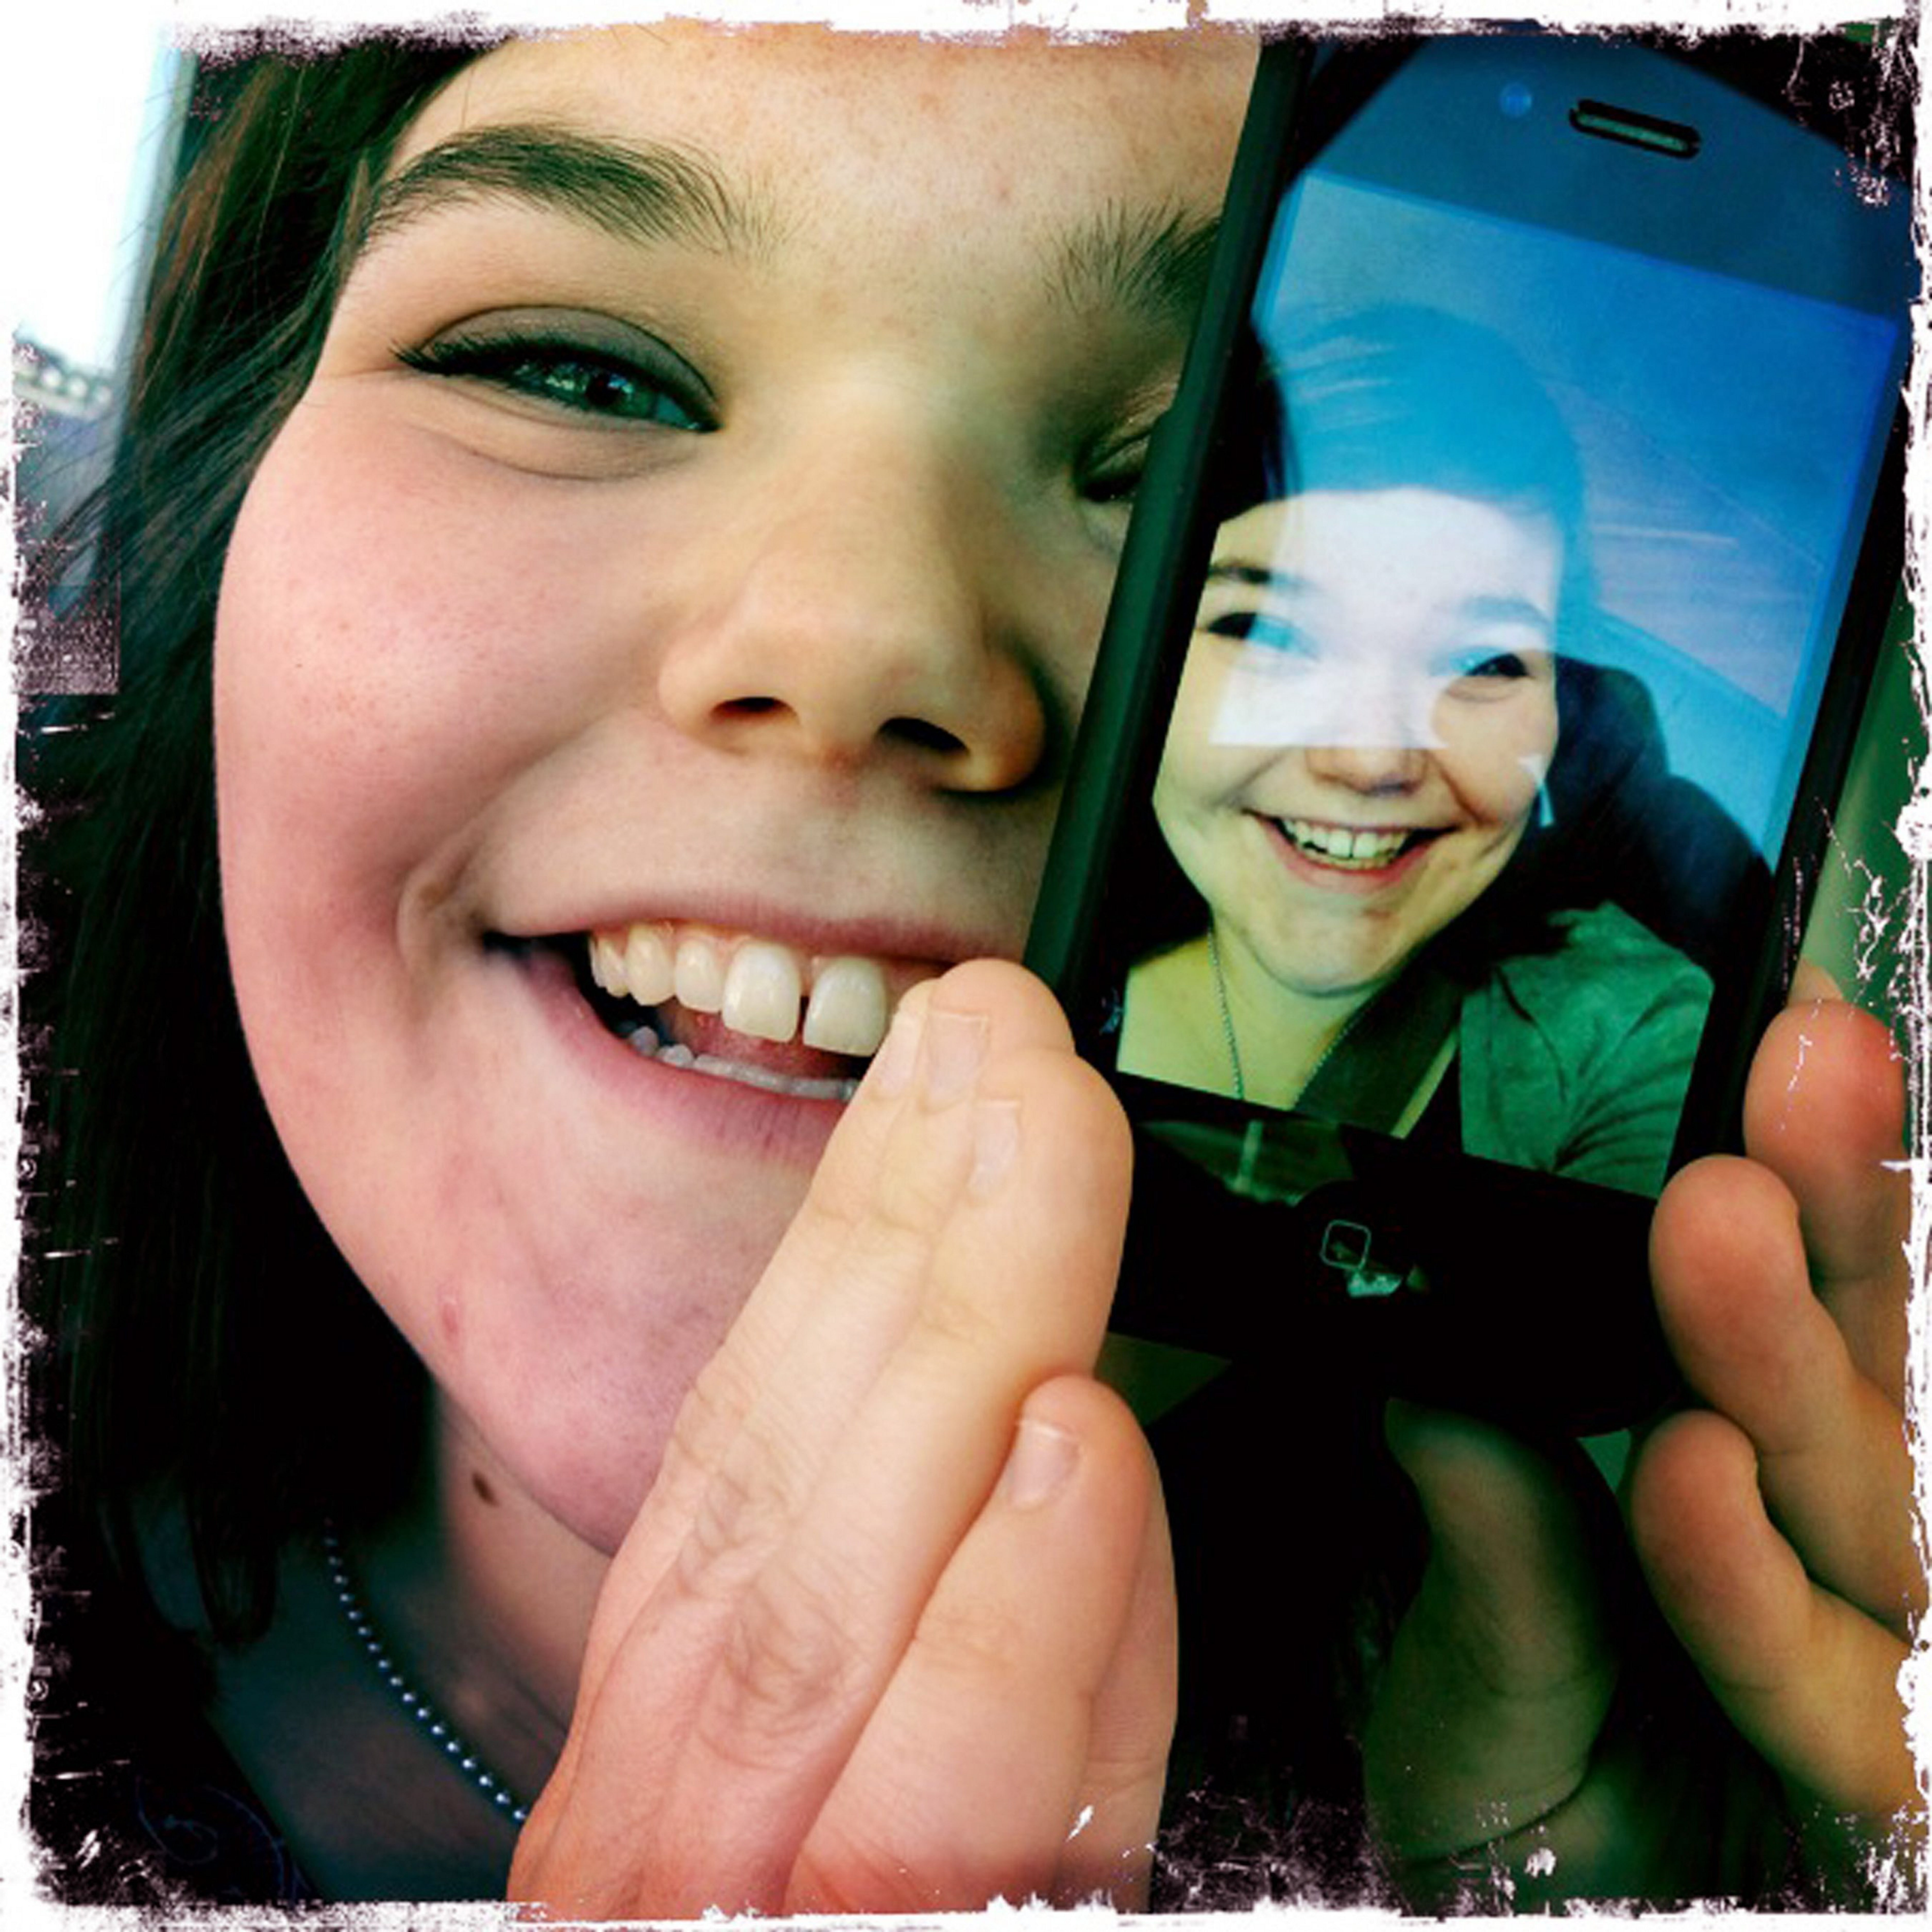 Emma Strub, shown on the University of Minnesota campus in Minneapolis, enjoys taking self-portraits, or selfies, with her cellphone and sharing them with friends.